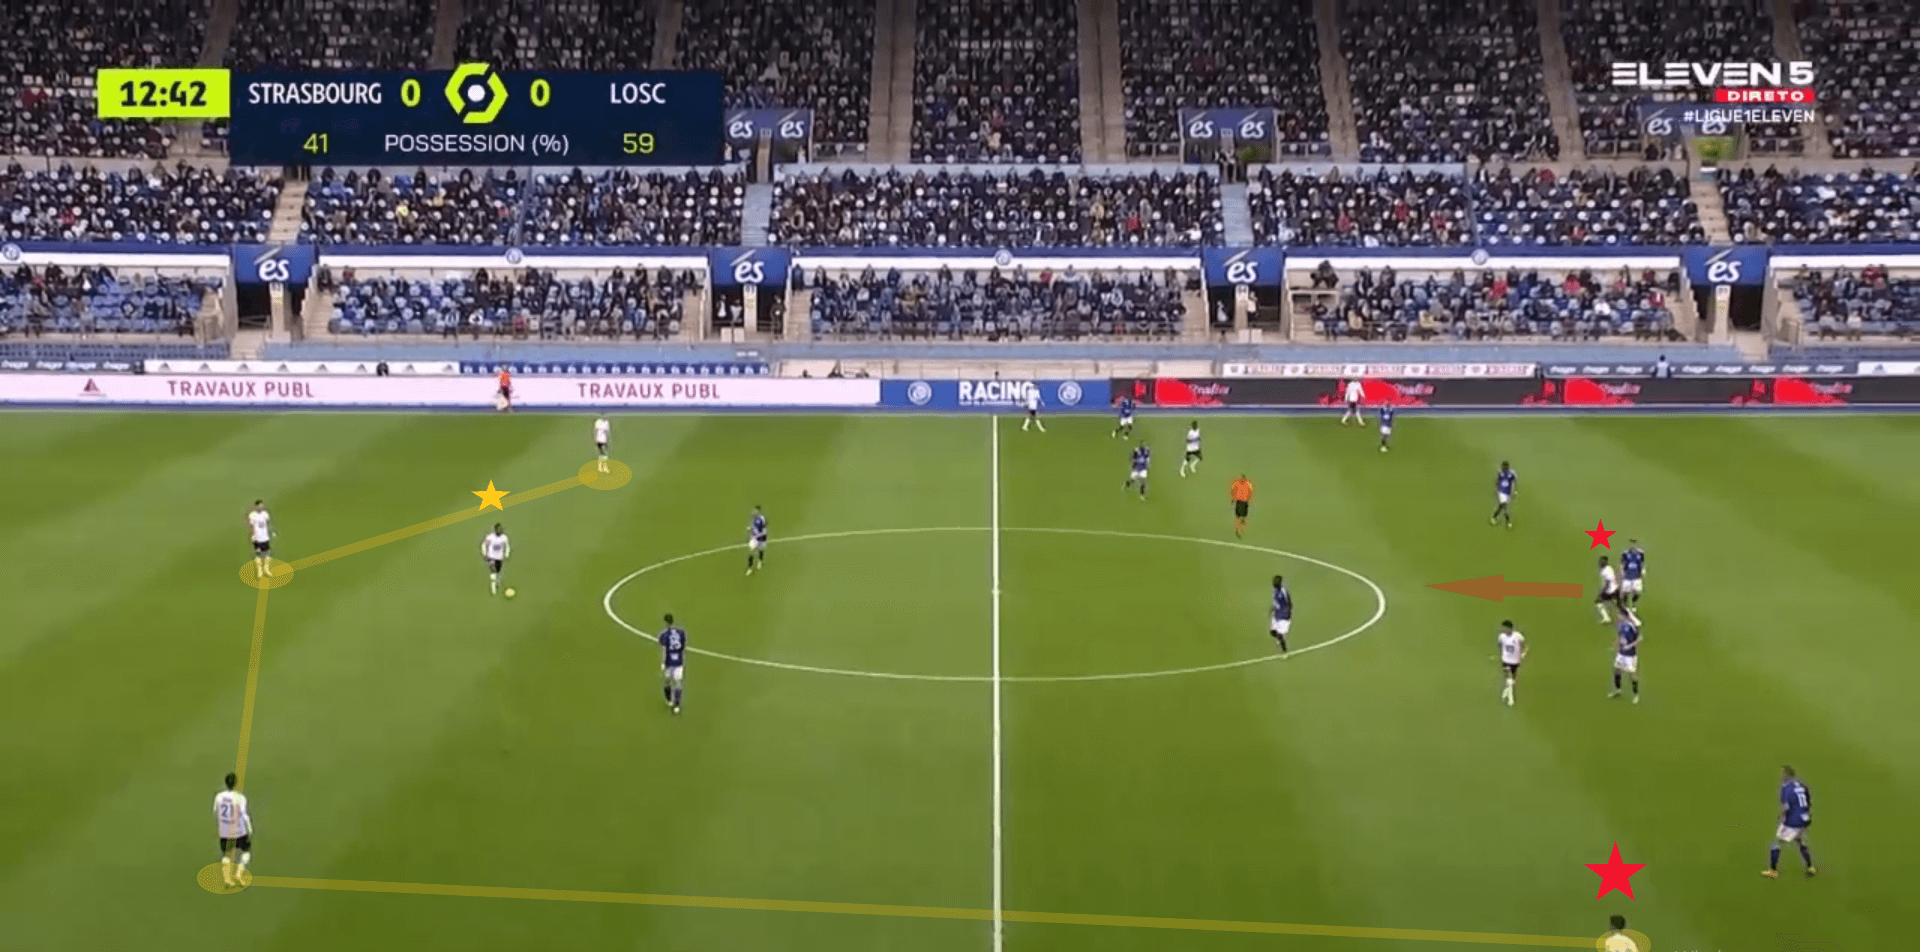 Ligue 1 2020/21: Strasbourg vs Lille - tactical analysis tactics